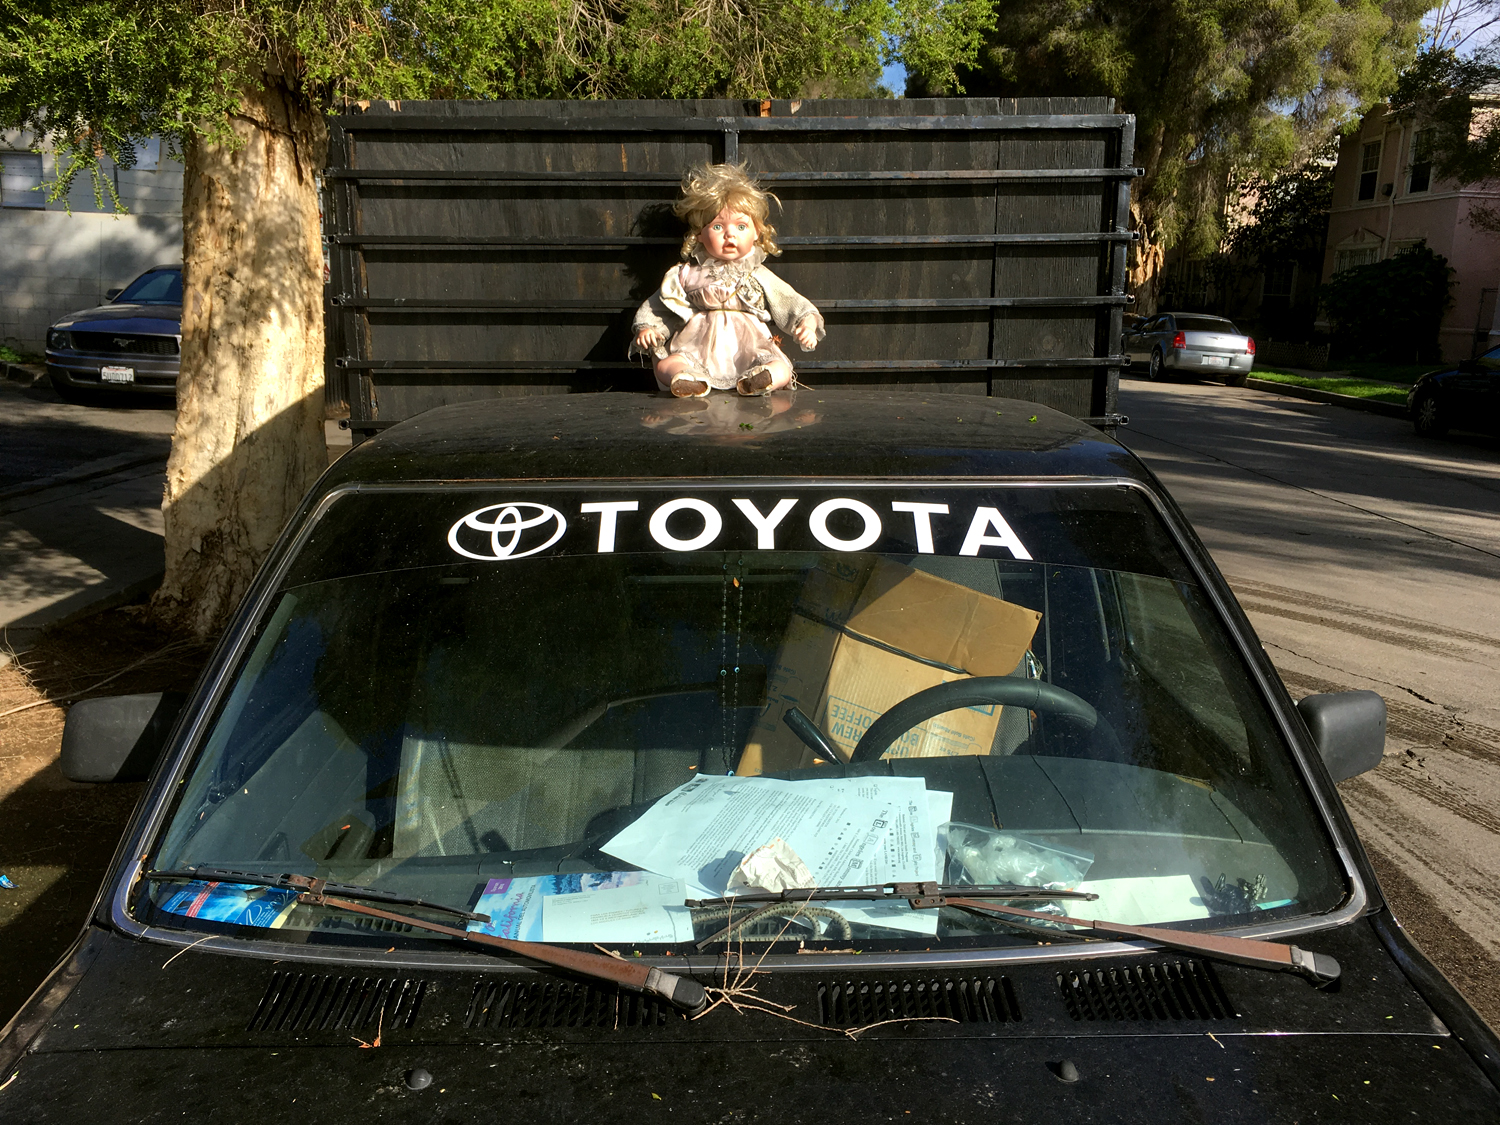 Doll on Toyota